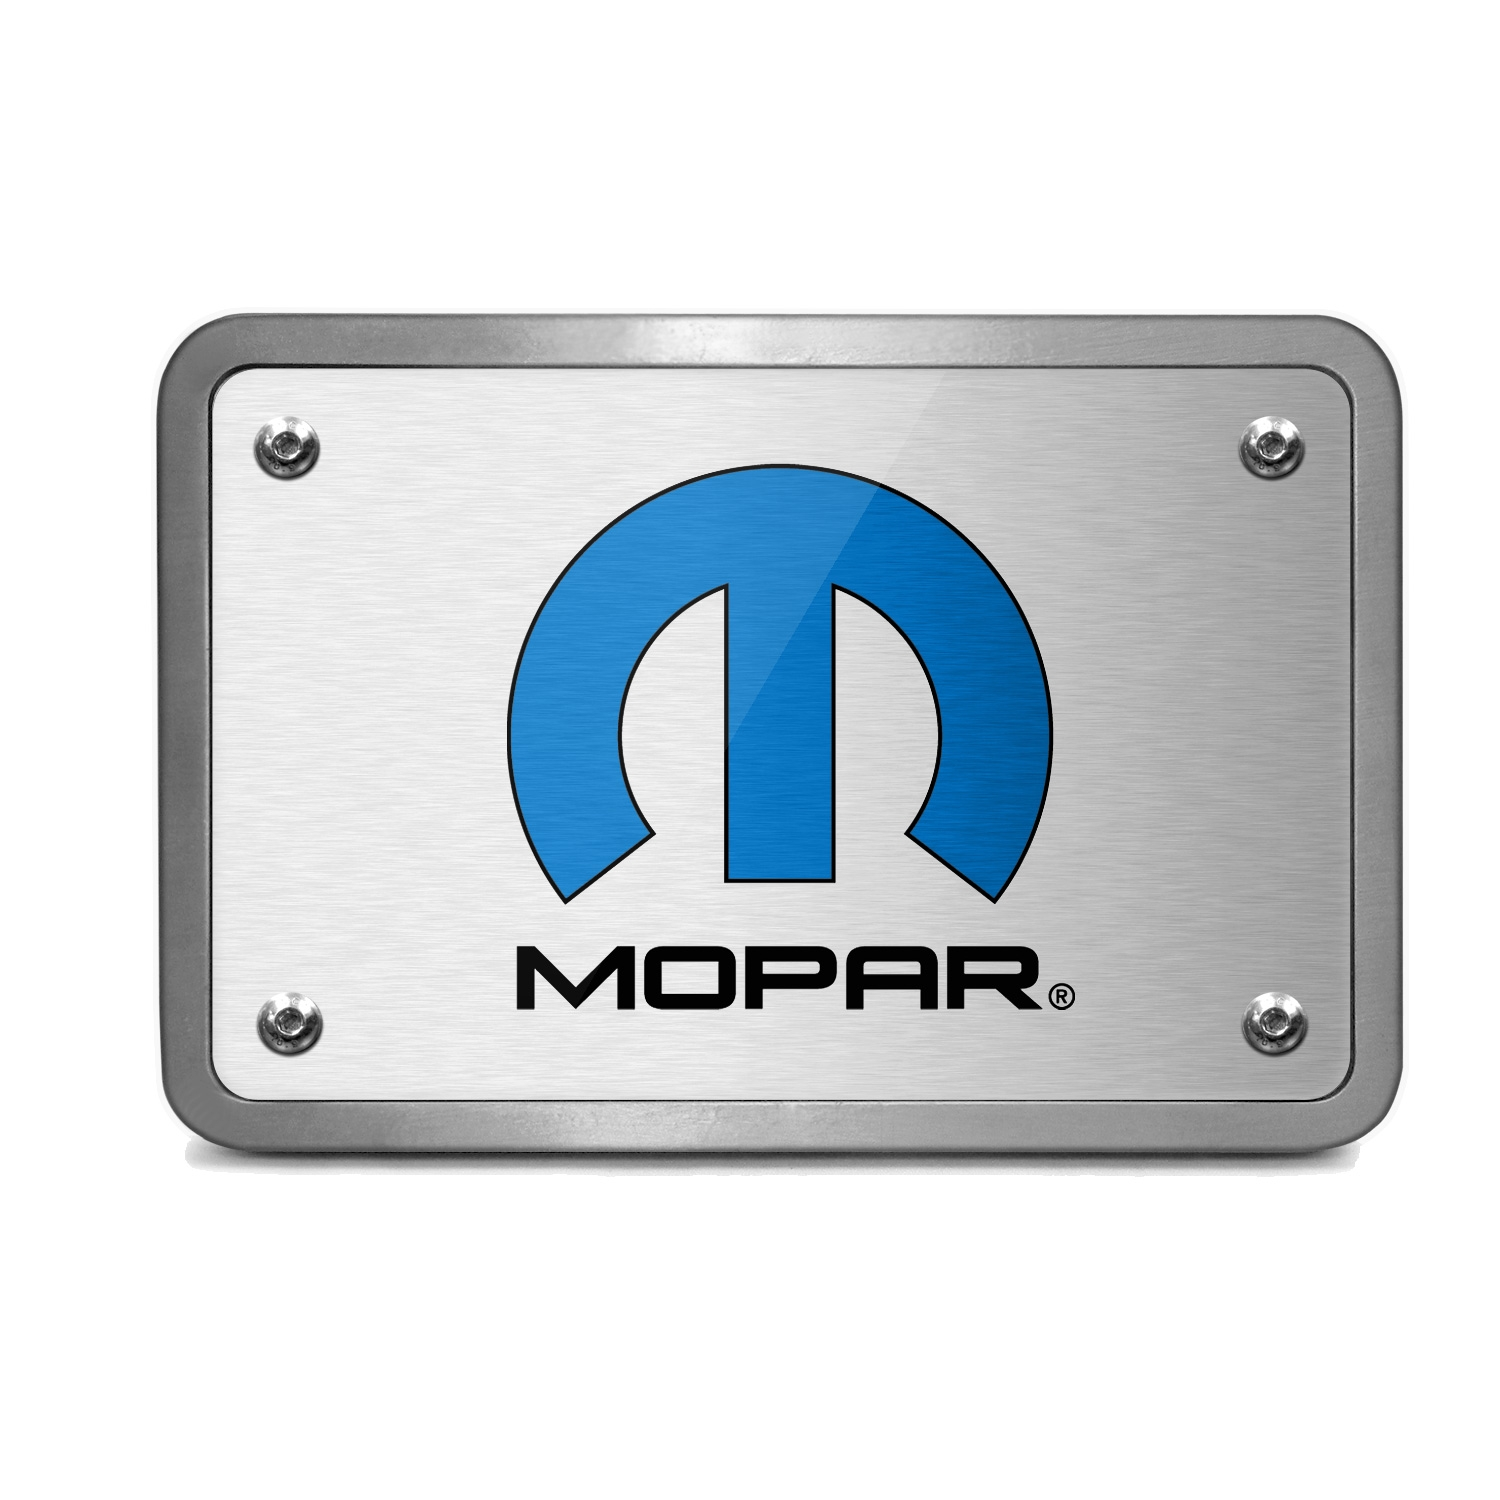 Mopar Logo UV Graphic Brushed Silver Billet Aluminum 2 inch Tow Hitch Cover